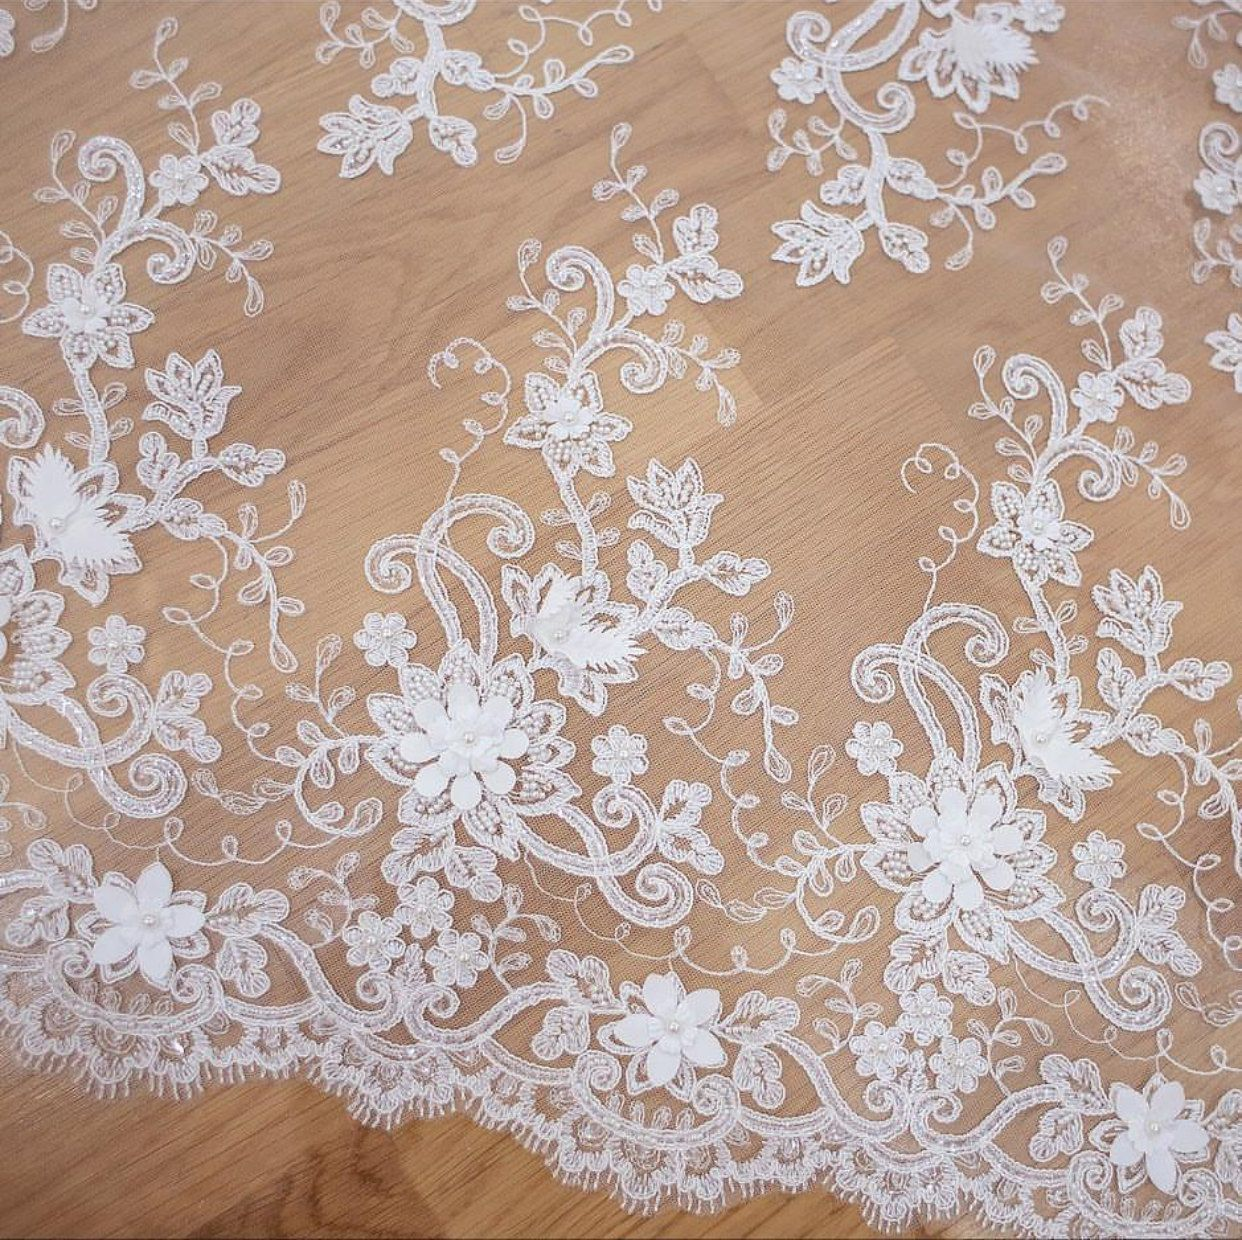 Fashion lace fabric dress lace elegent tulle french guipure lace ...